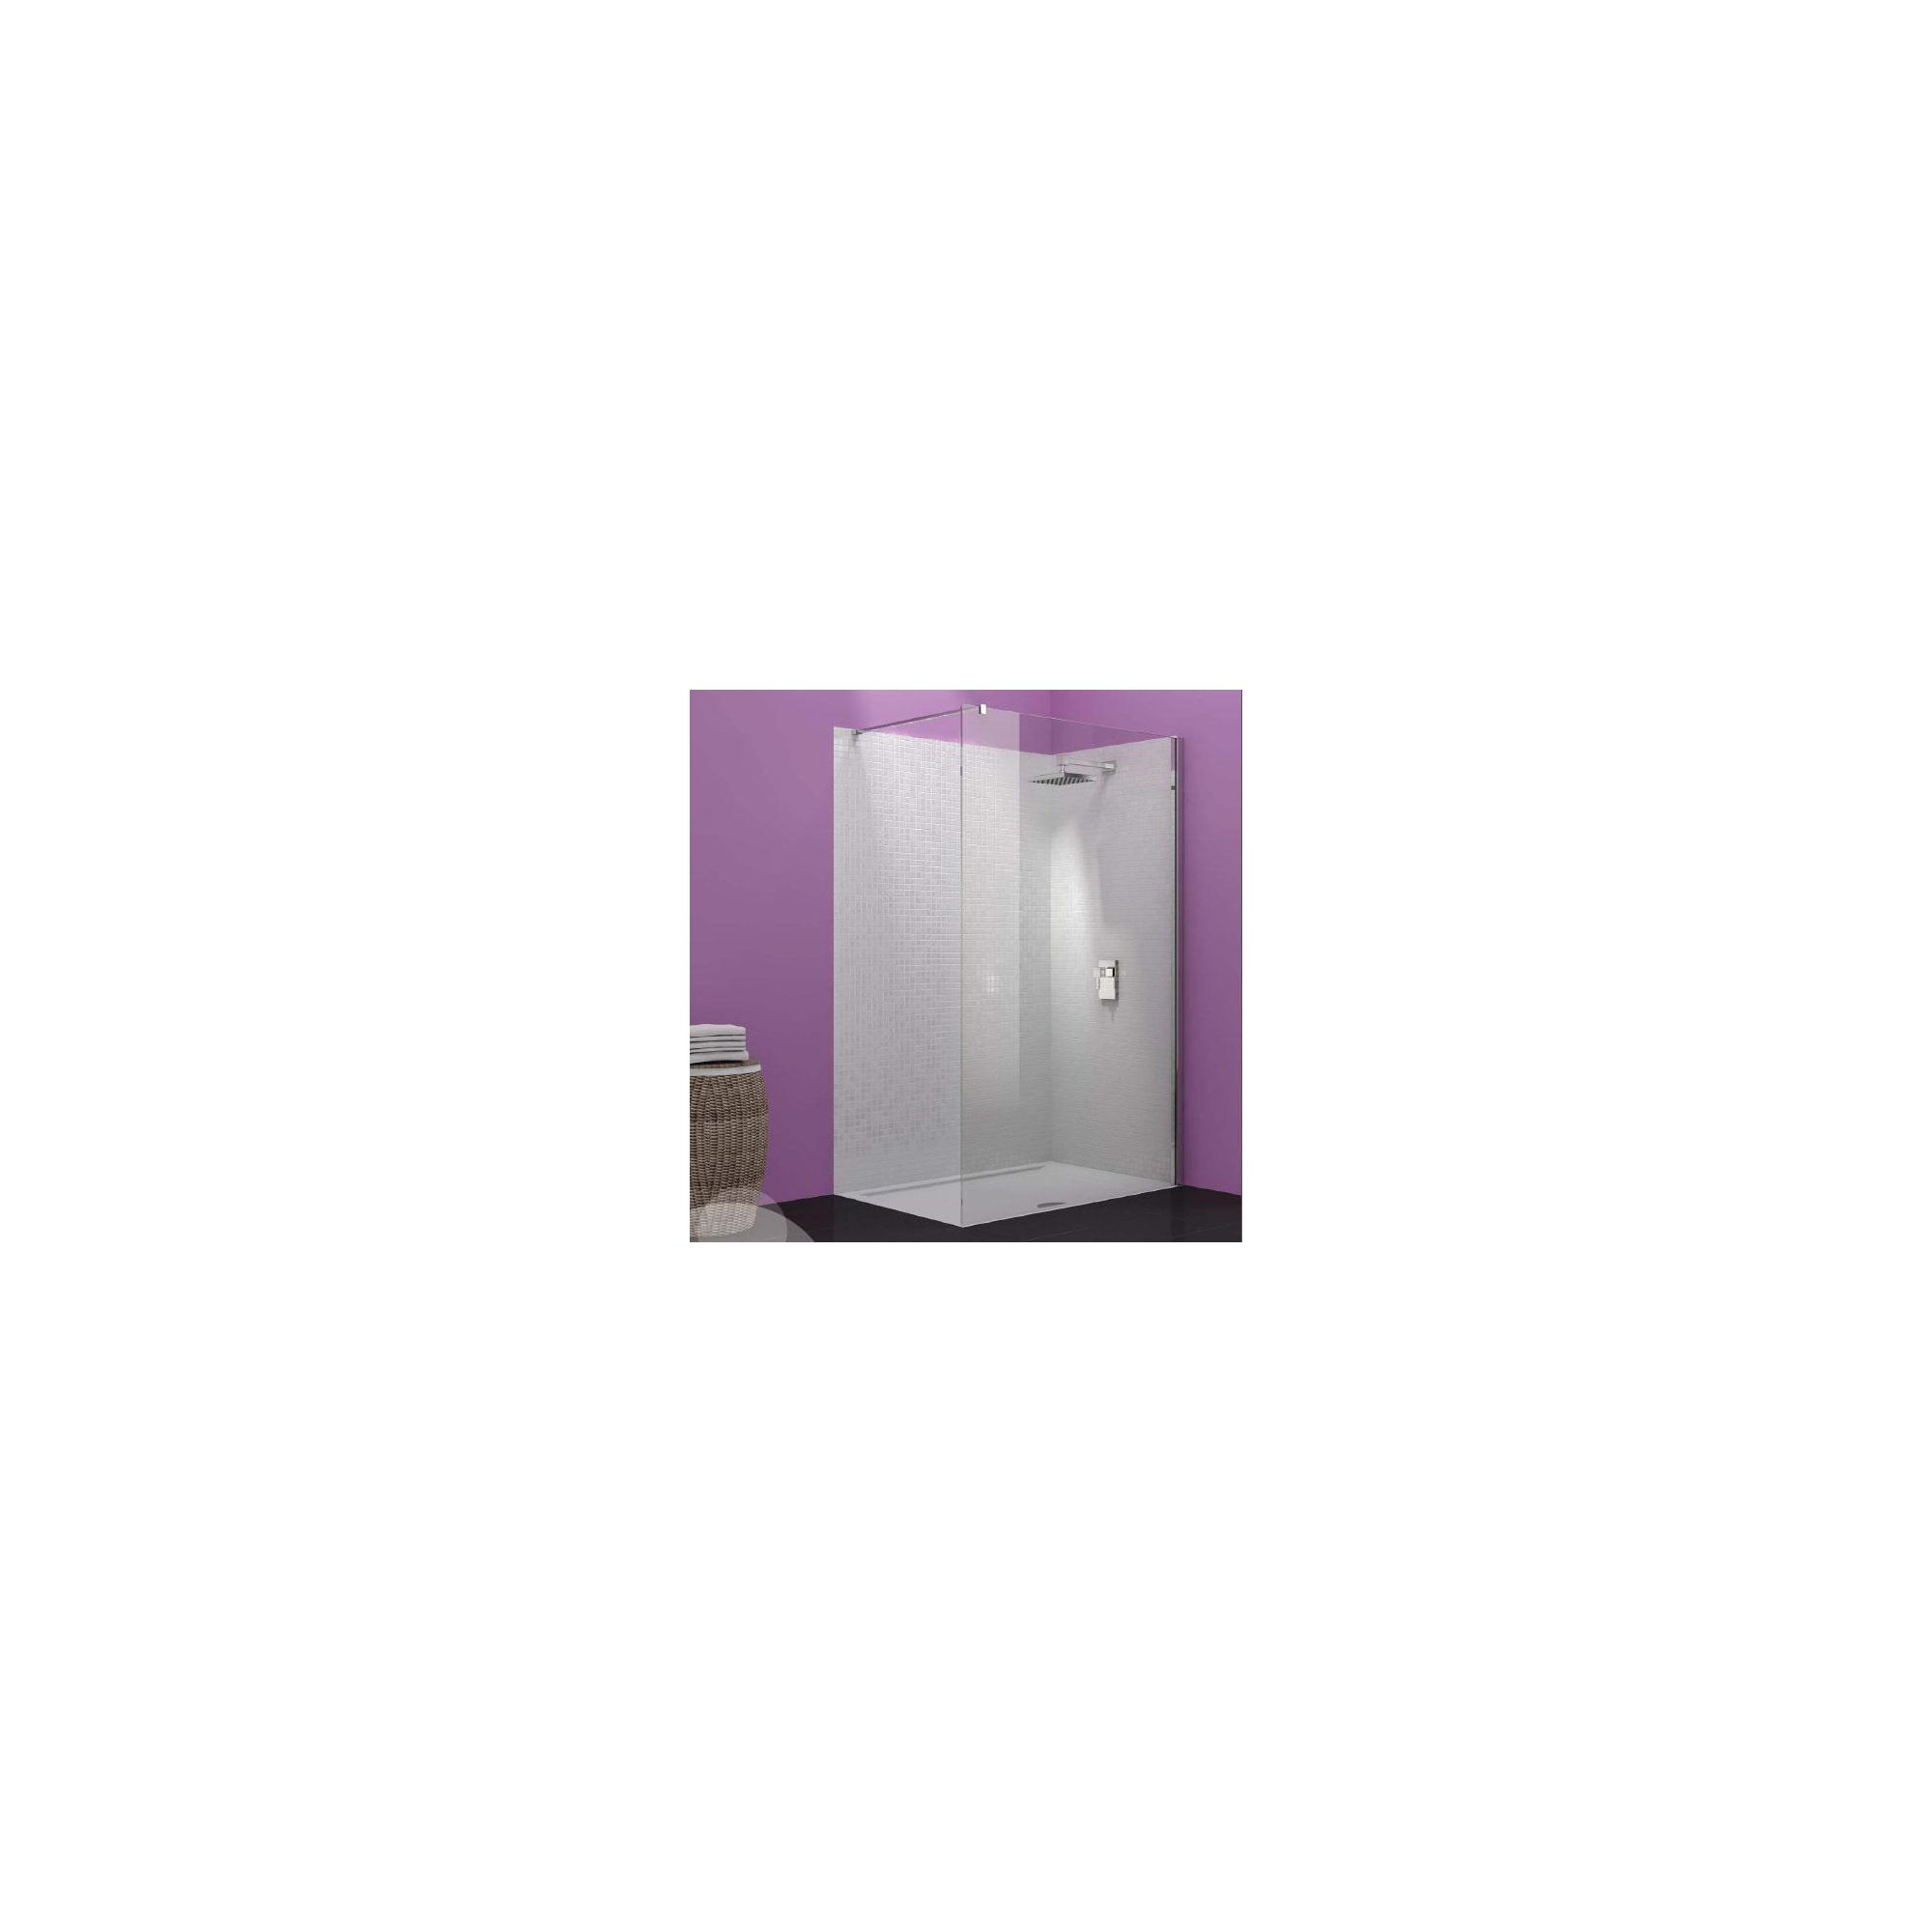 Merlyn Vivid Ten Wet Room Shower Enclosure, 1200mm x 900mm, Low Profile Tray, 10mm Glass at Tesco Direct